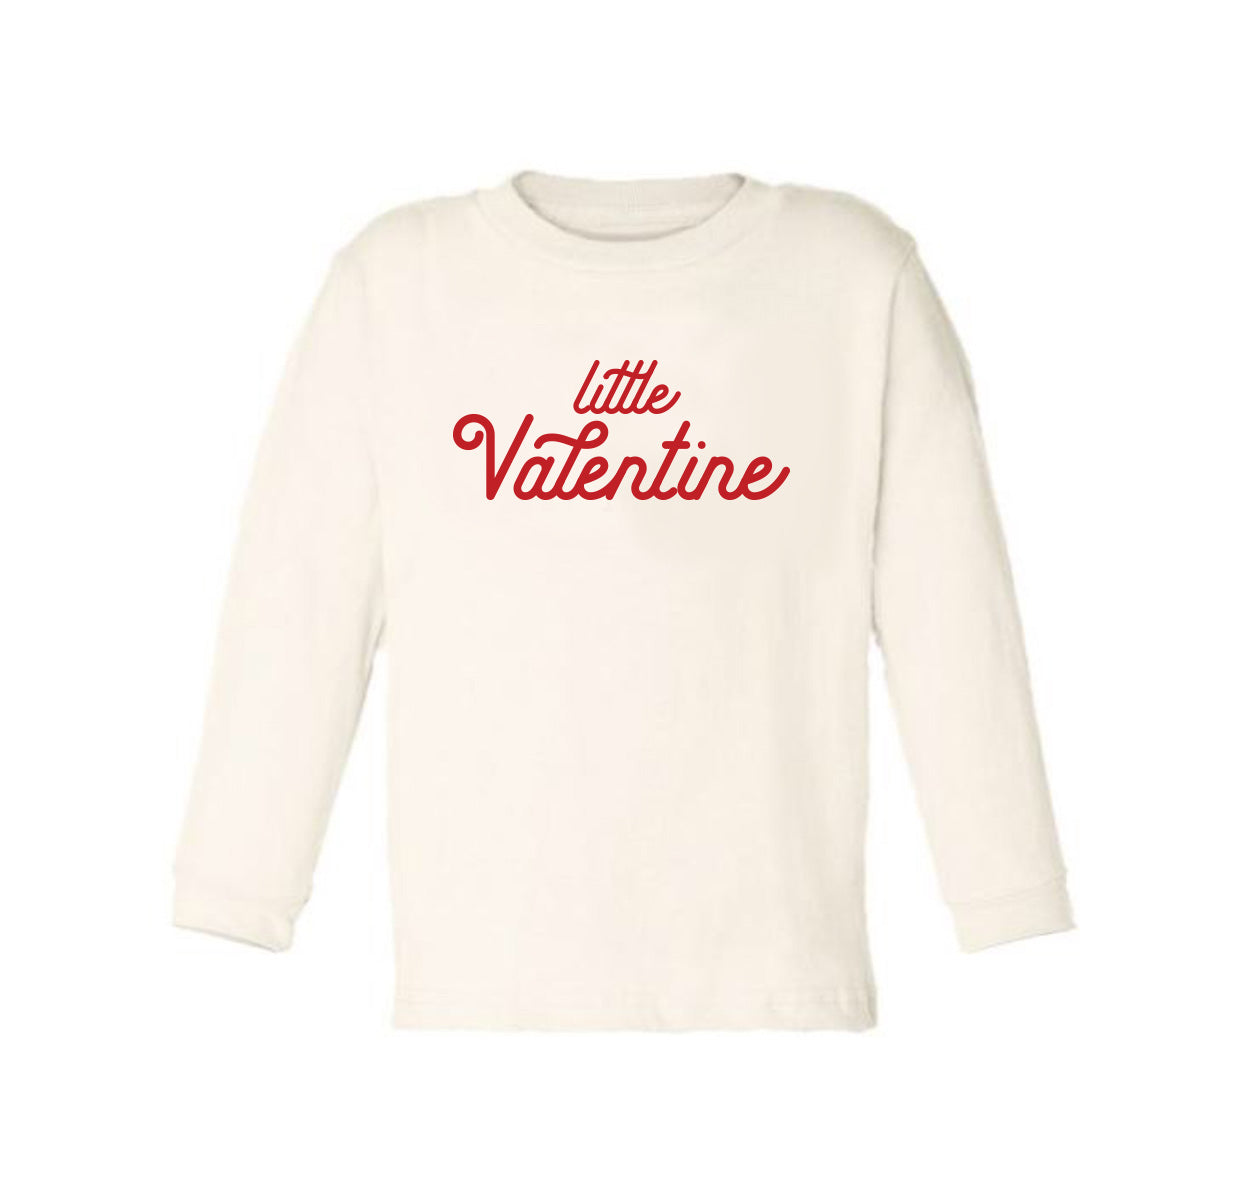 Little Valentine [Long Sleeved Toddler Tee]